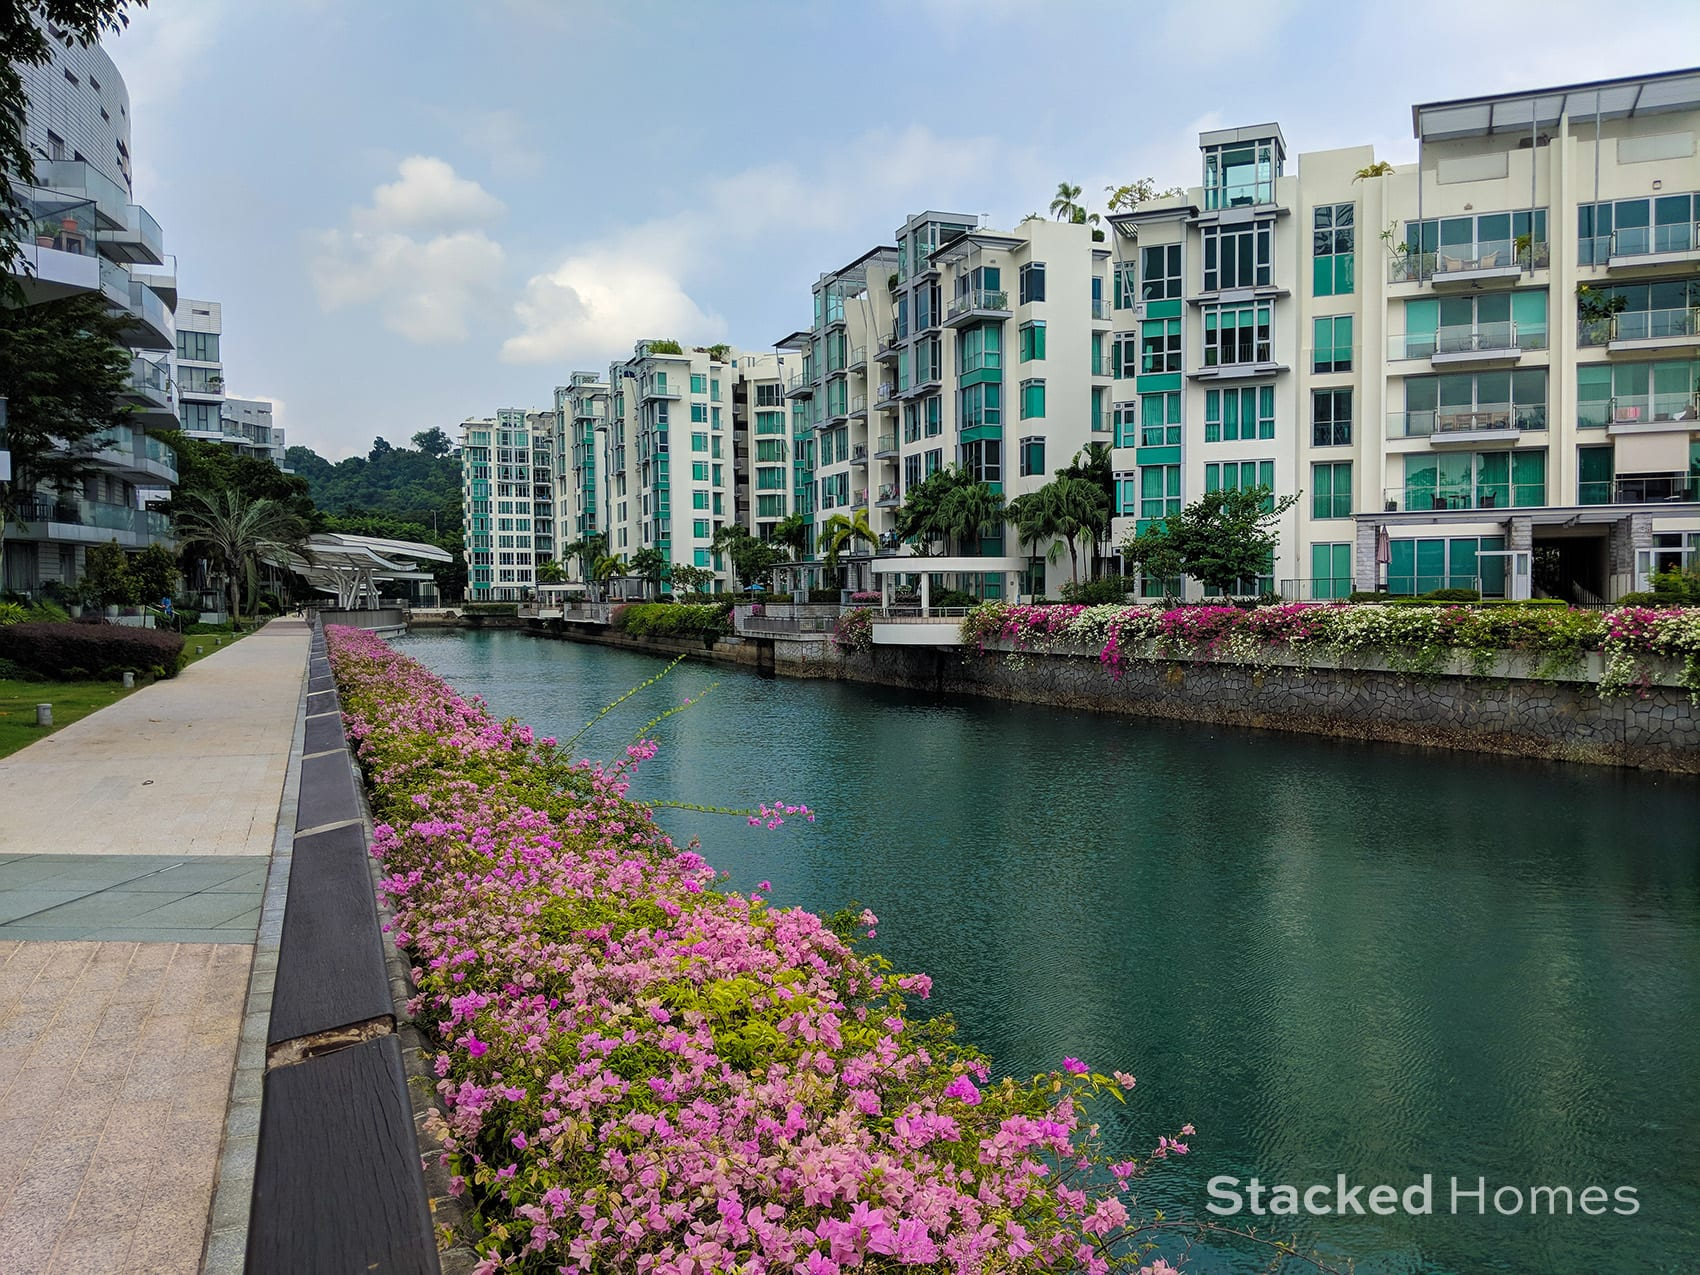 Reflections at Keppel Bay canal